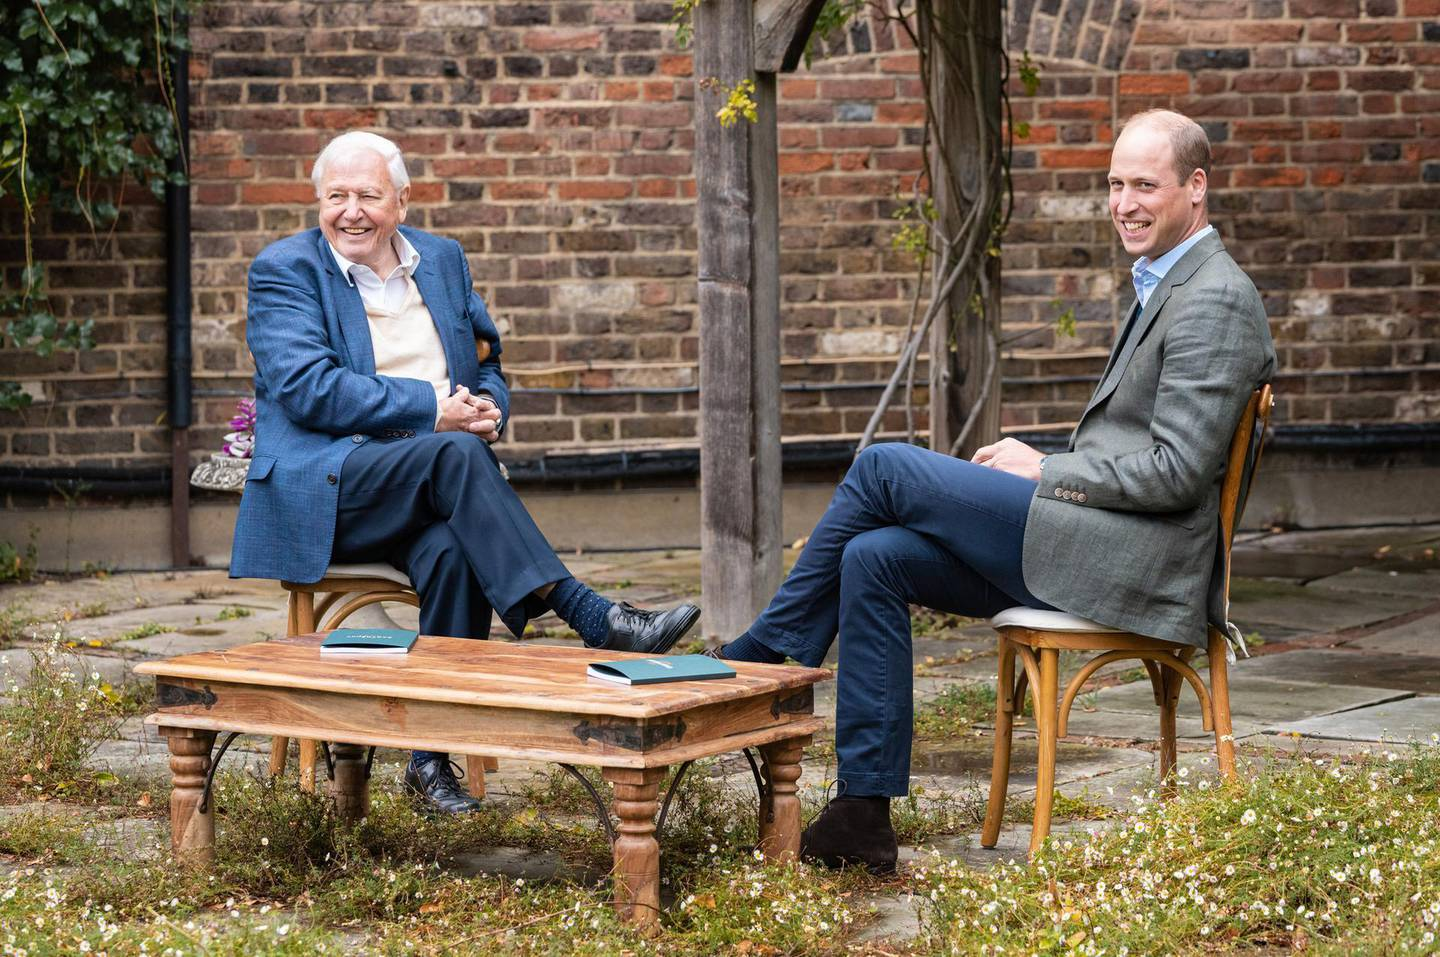 LONDON, ENGLAND: (EMBARGOED TO 0001 ON OCTOBER 8, 2020) (NO SALES) In this undated photo issued by Kensington Palace, Prince William, Duke of Cambridge and Sir David Attenborough discuss The Earthshot Prize at Kensington Palace, in London, England. (Photo by Kensington Palace via Getty Images) NOTE TO EDITORS: This handout photo may only be used in for editorial reporting purposes for the contemporaneous illustration of events, things or the people in the image or facts mentioned in the caption. Reuse of the picture may require further permission from the copyright holder.